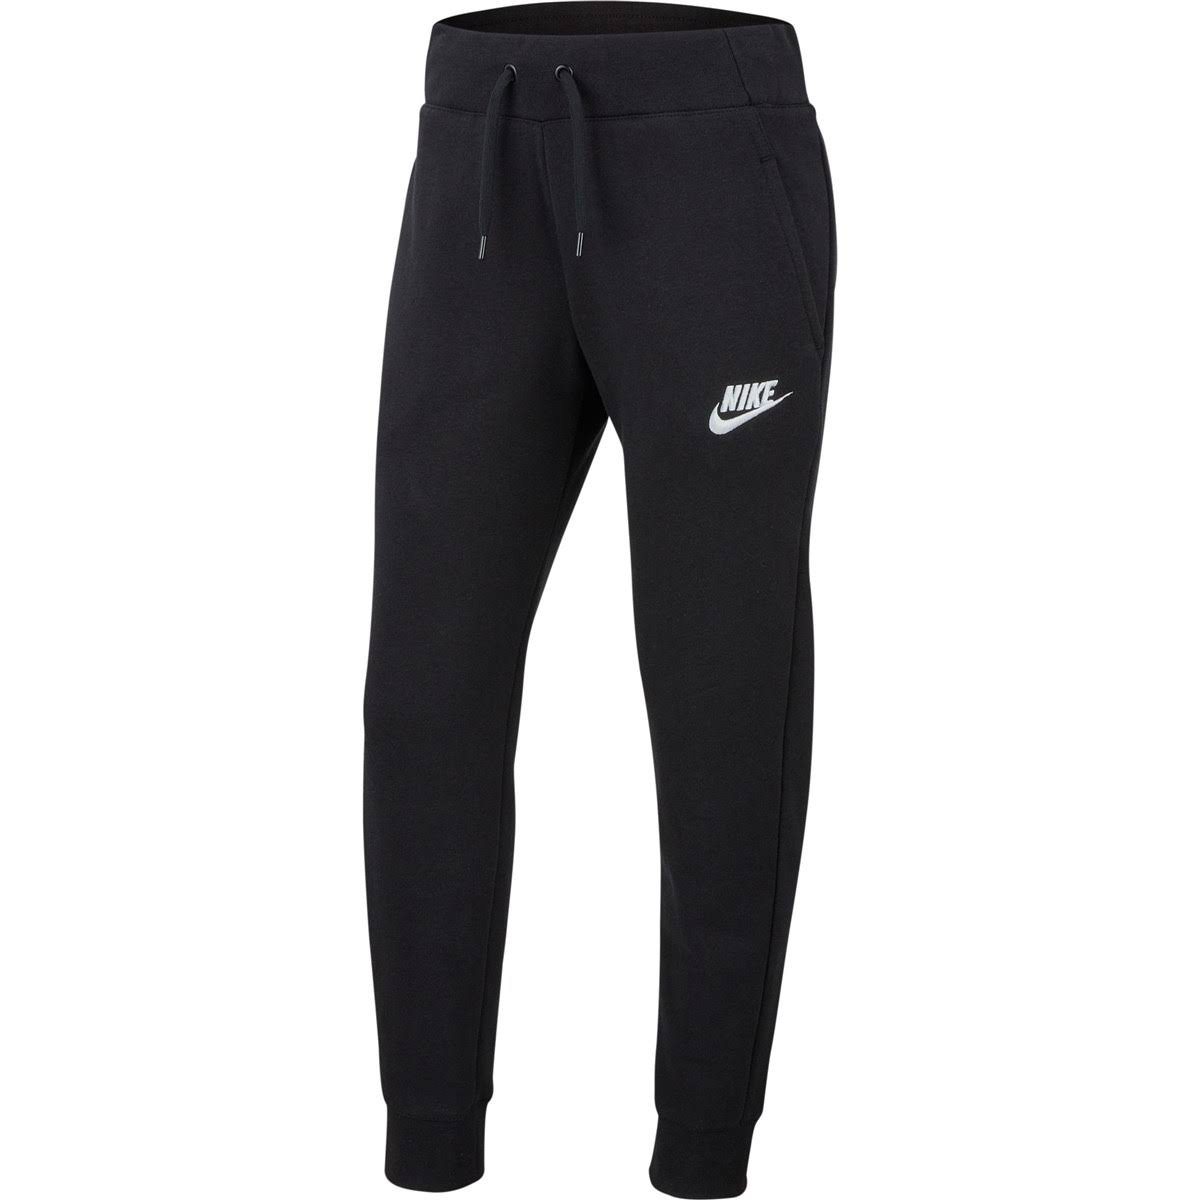 Nike Girls Sports Pants - Black, Large